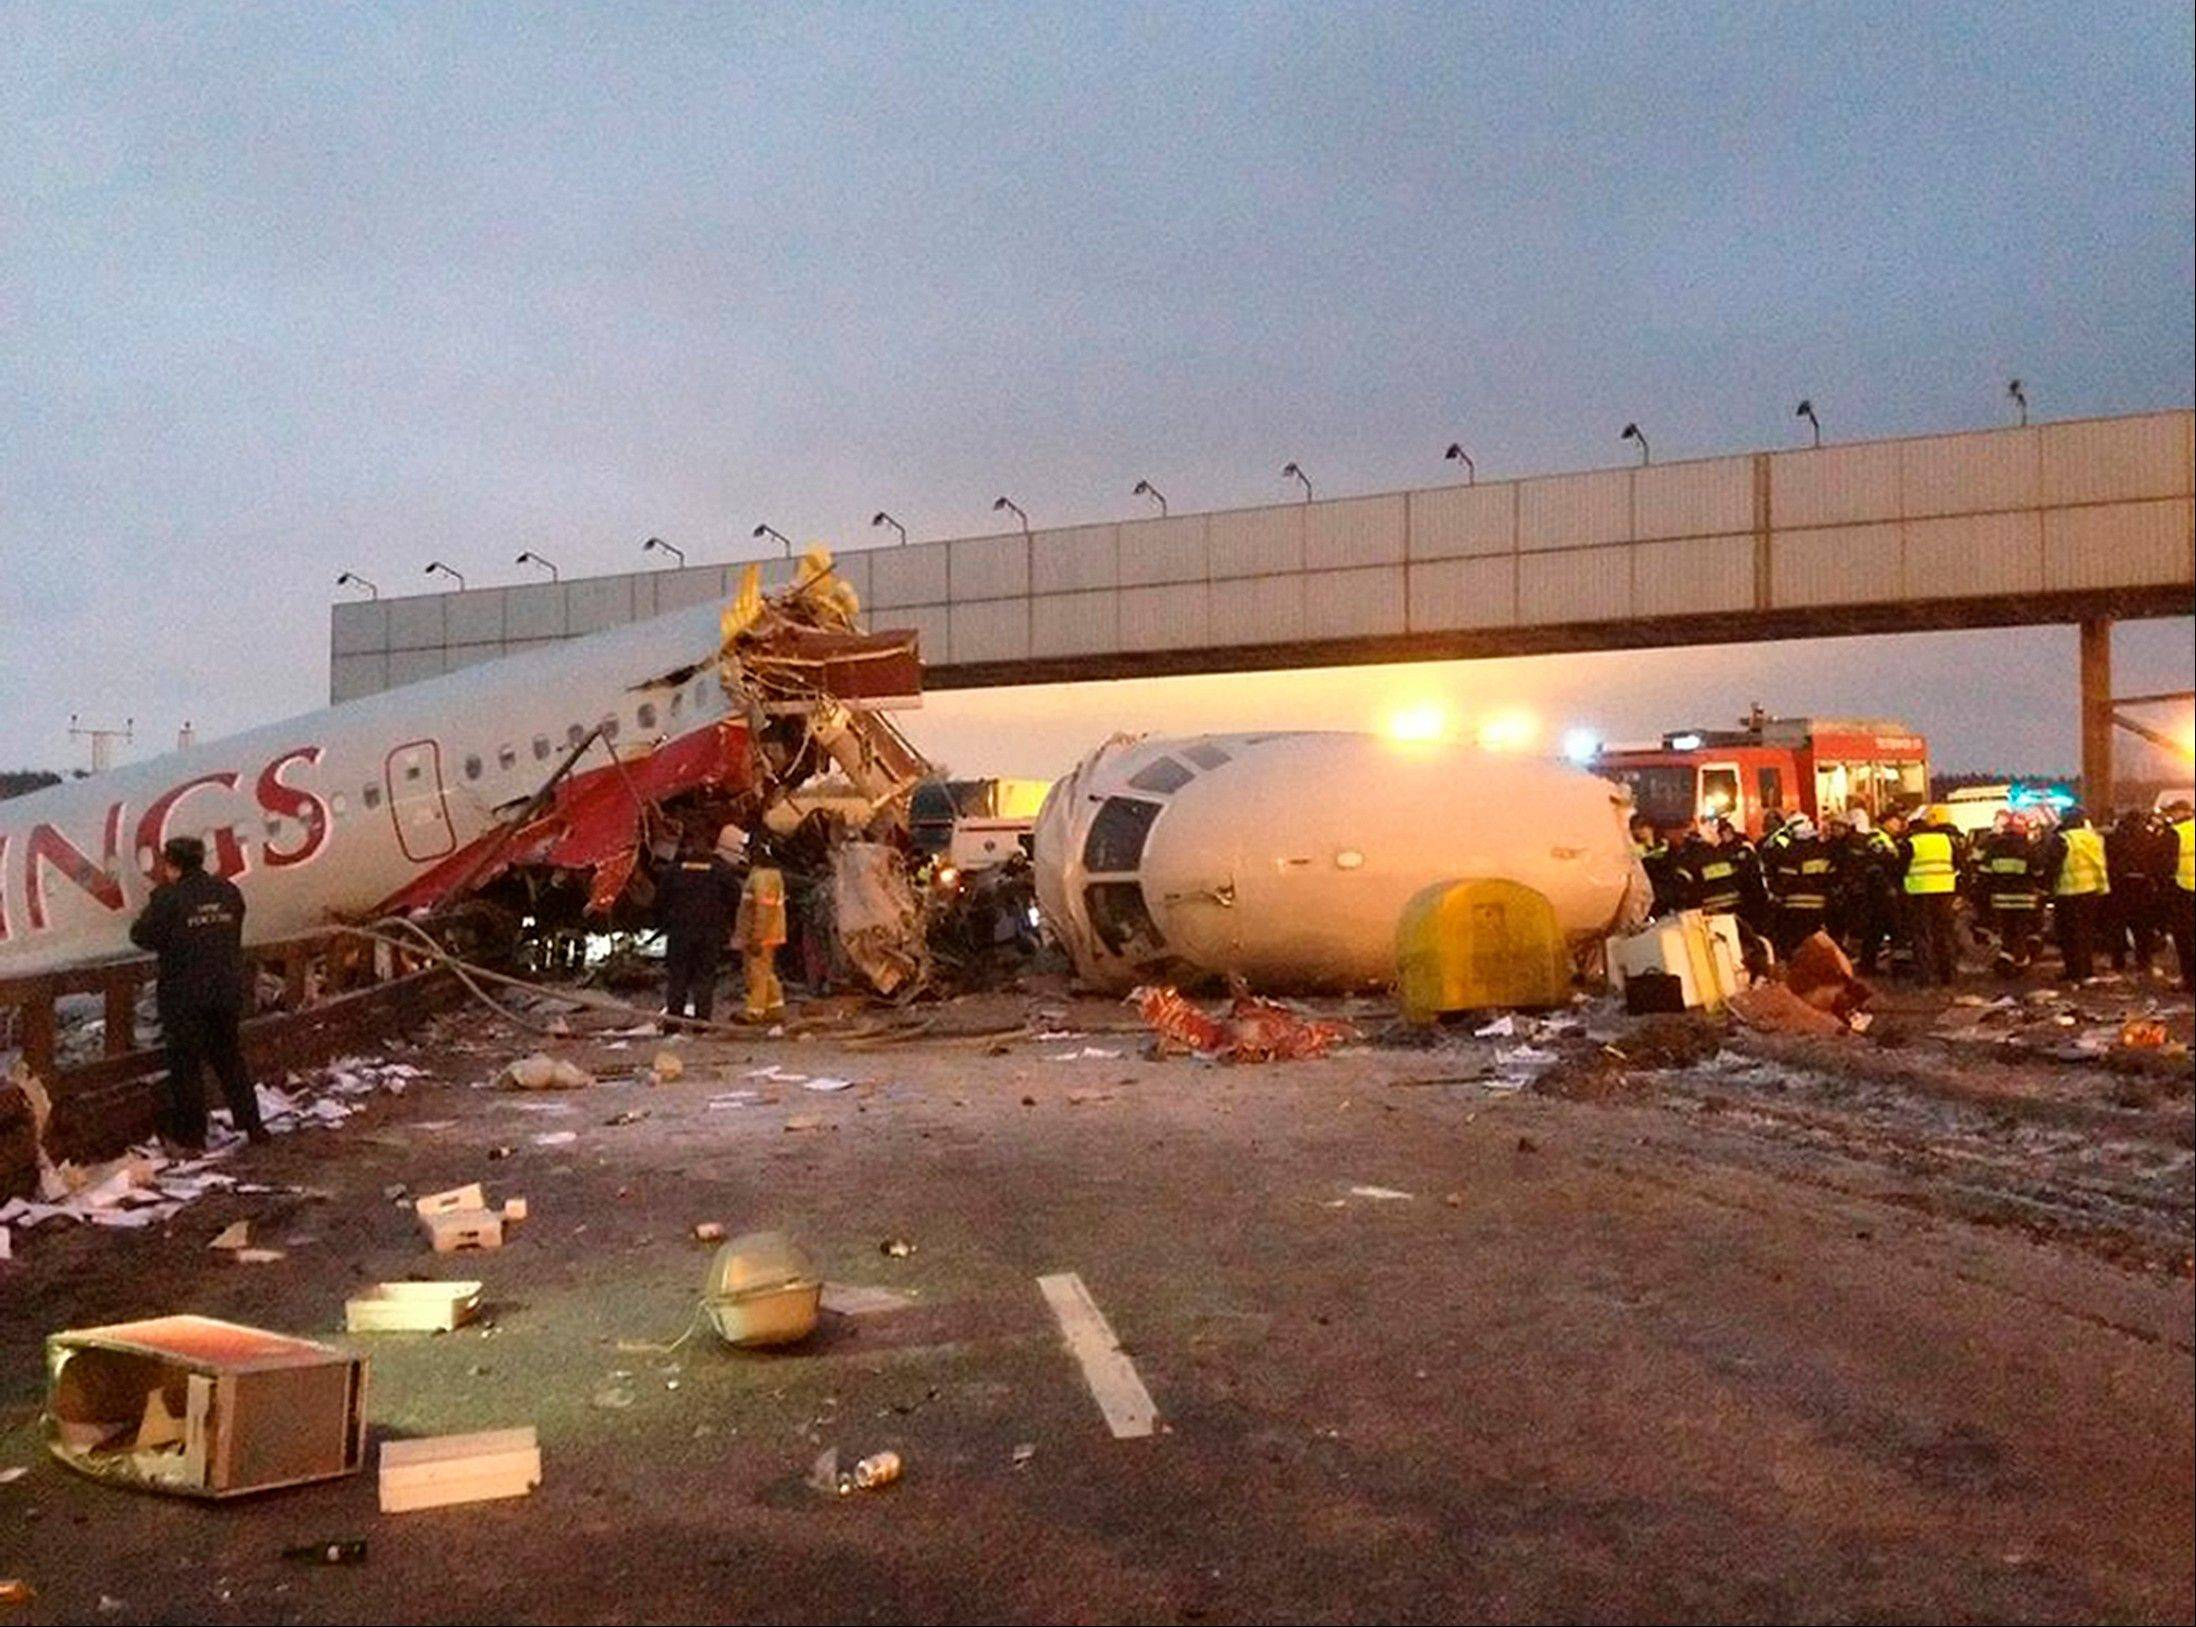 Rescuers work Saturday at the site of a plane crash at Vnukovo Airport in Moscow.